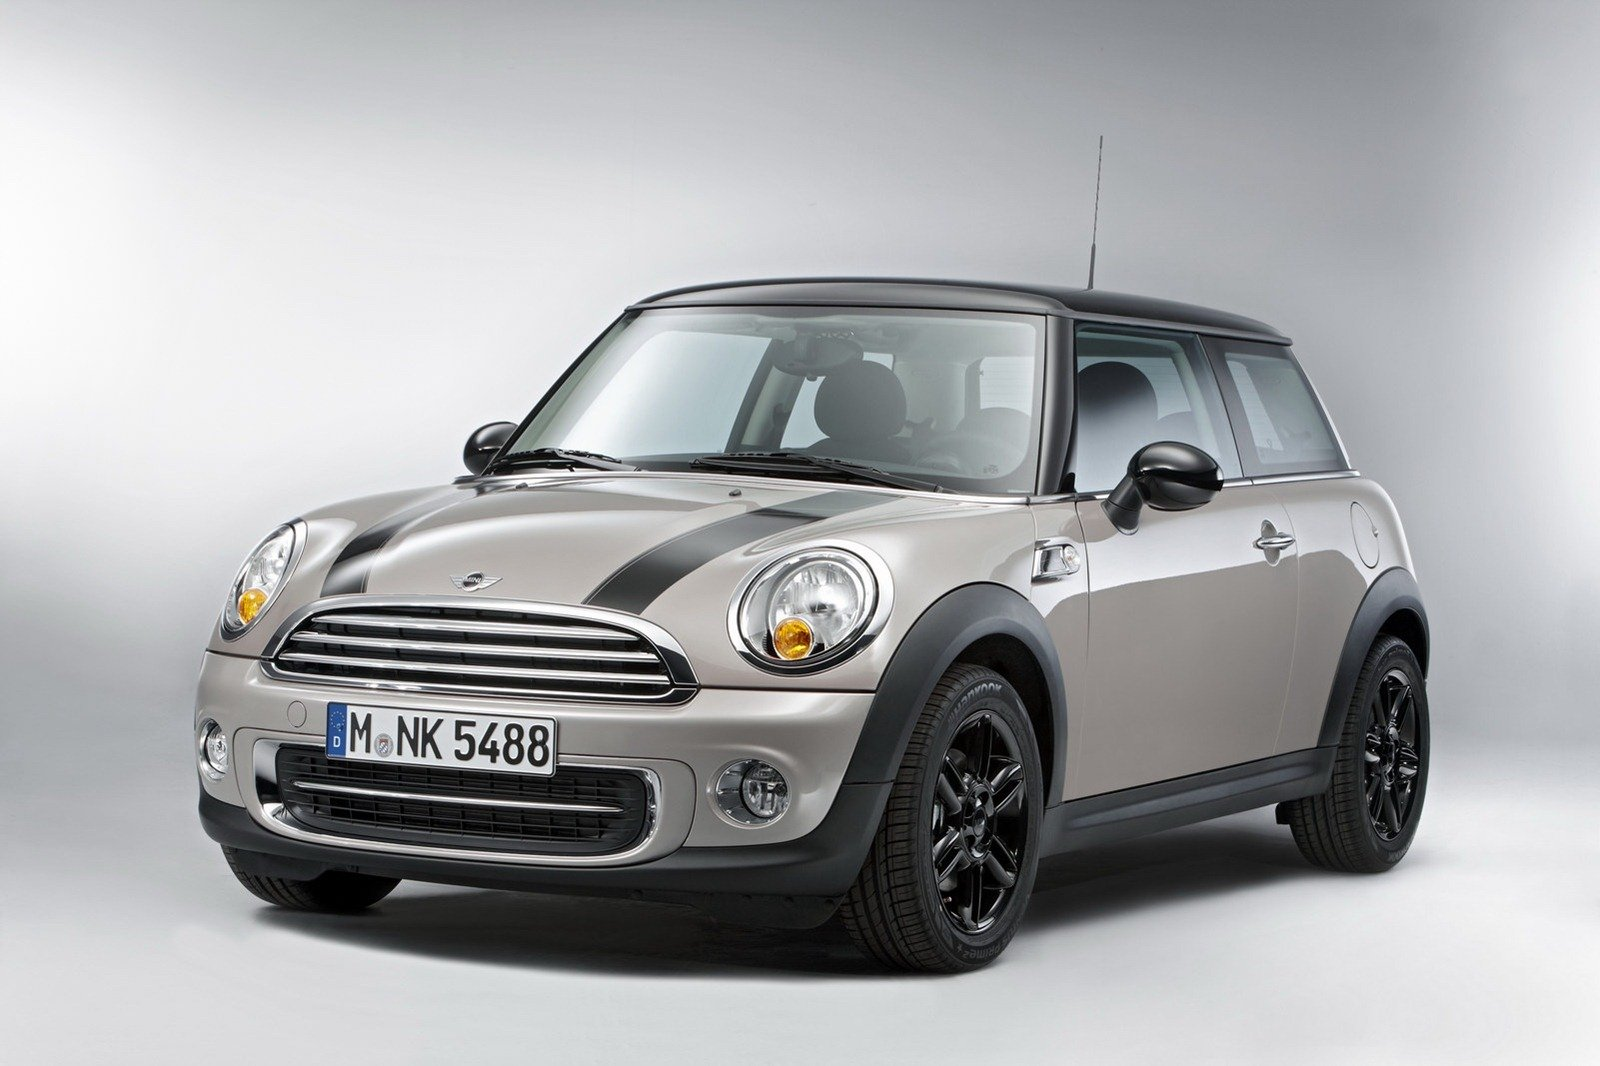 2012 mini cooper baker street special edition review top. Black Bedroom Furniture Sets. Home Design Ideas